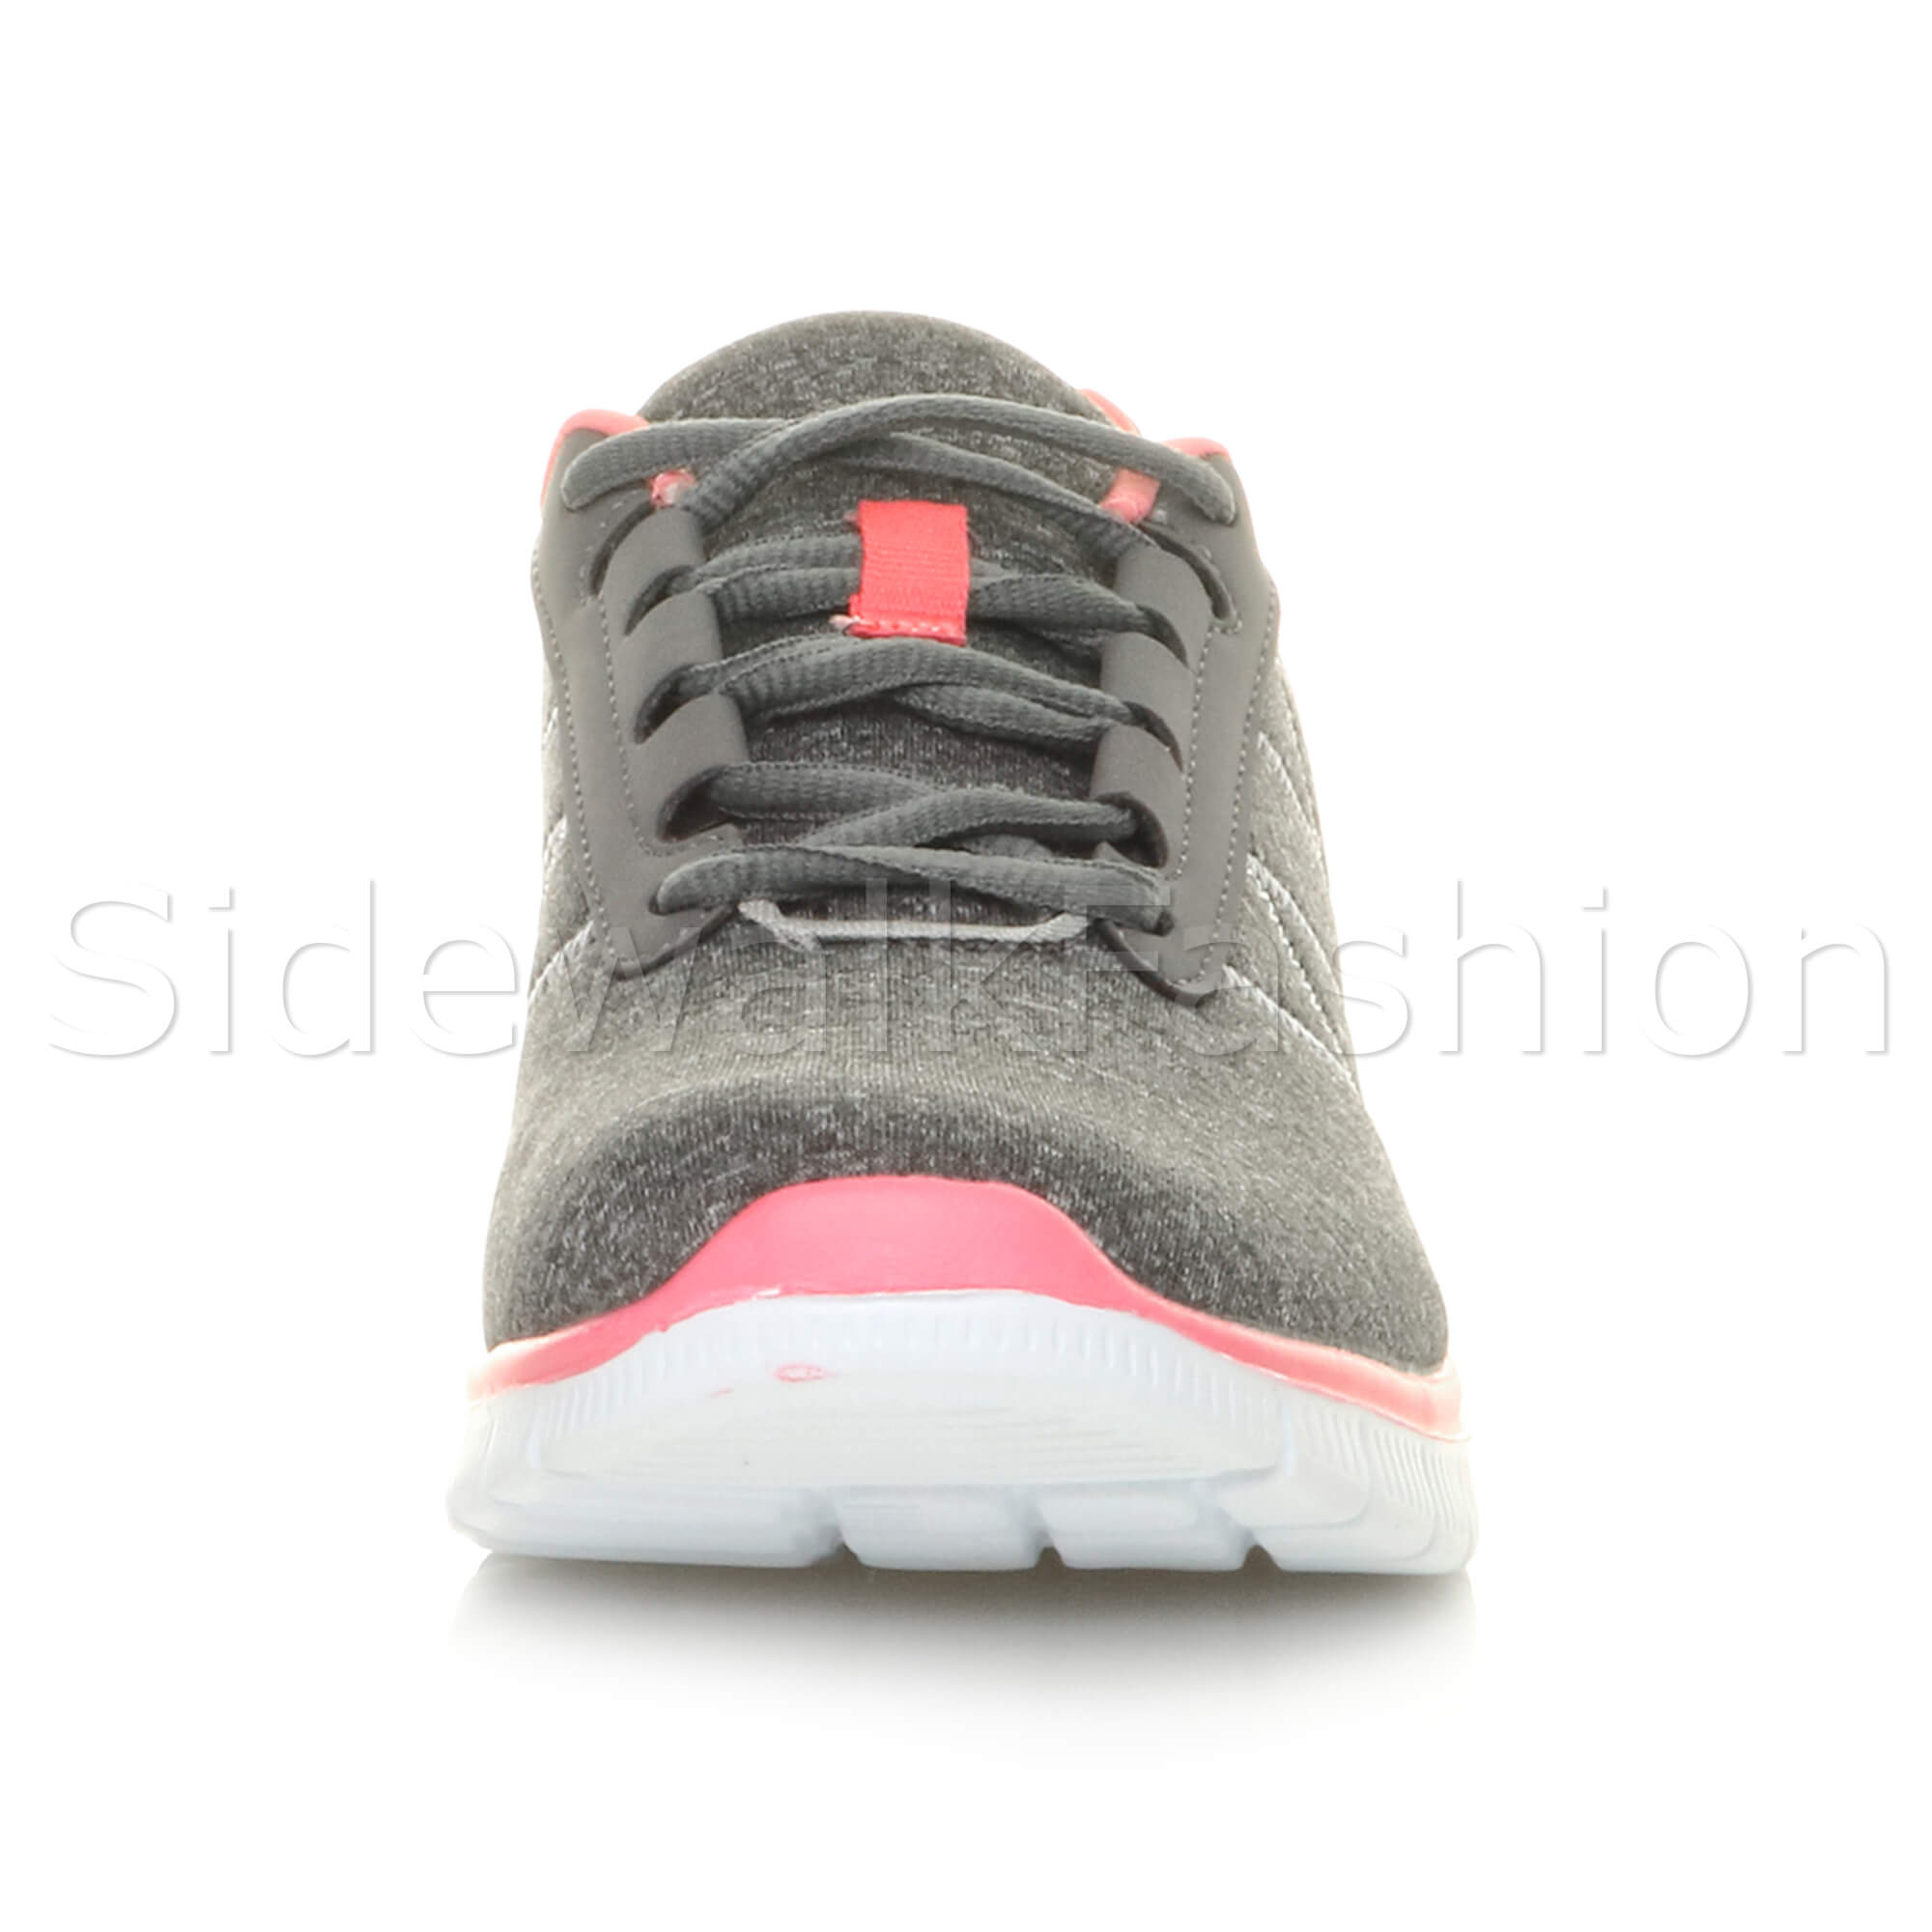 Womens-ladies-comfort-memory-foam-lace-up-trainers-activewear-sneakers-gym-shoes thumbnail 55